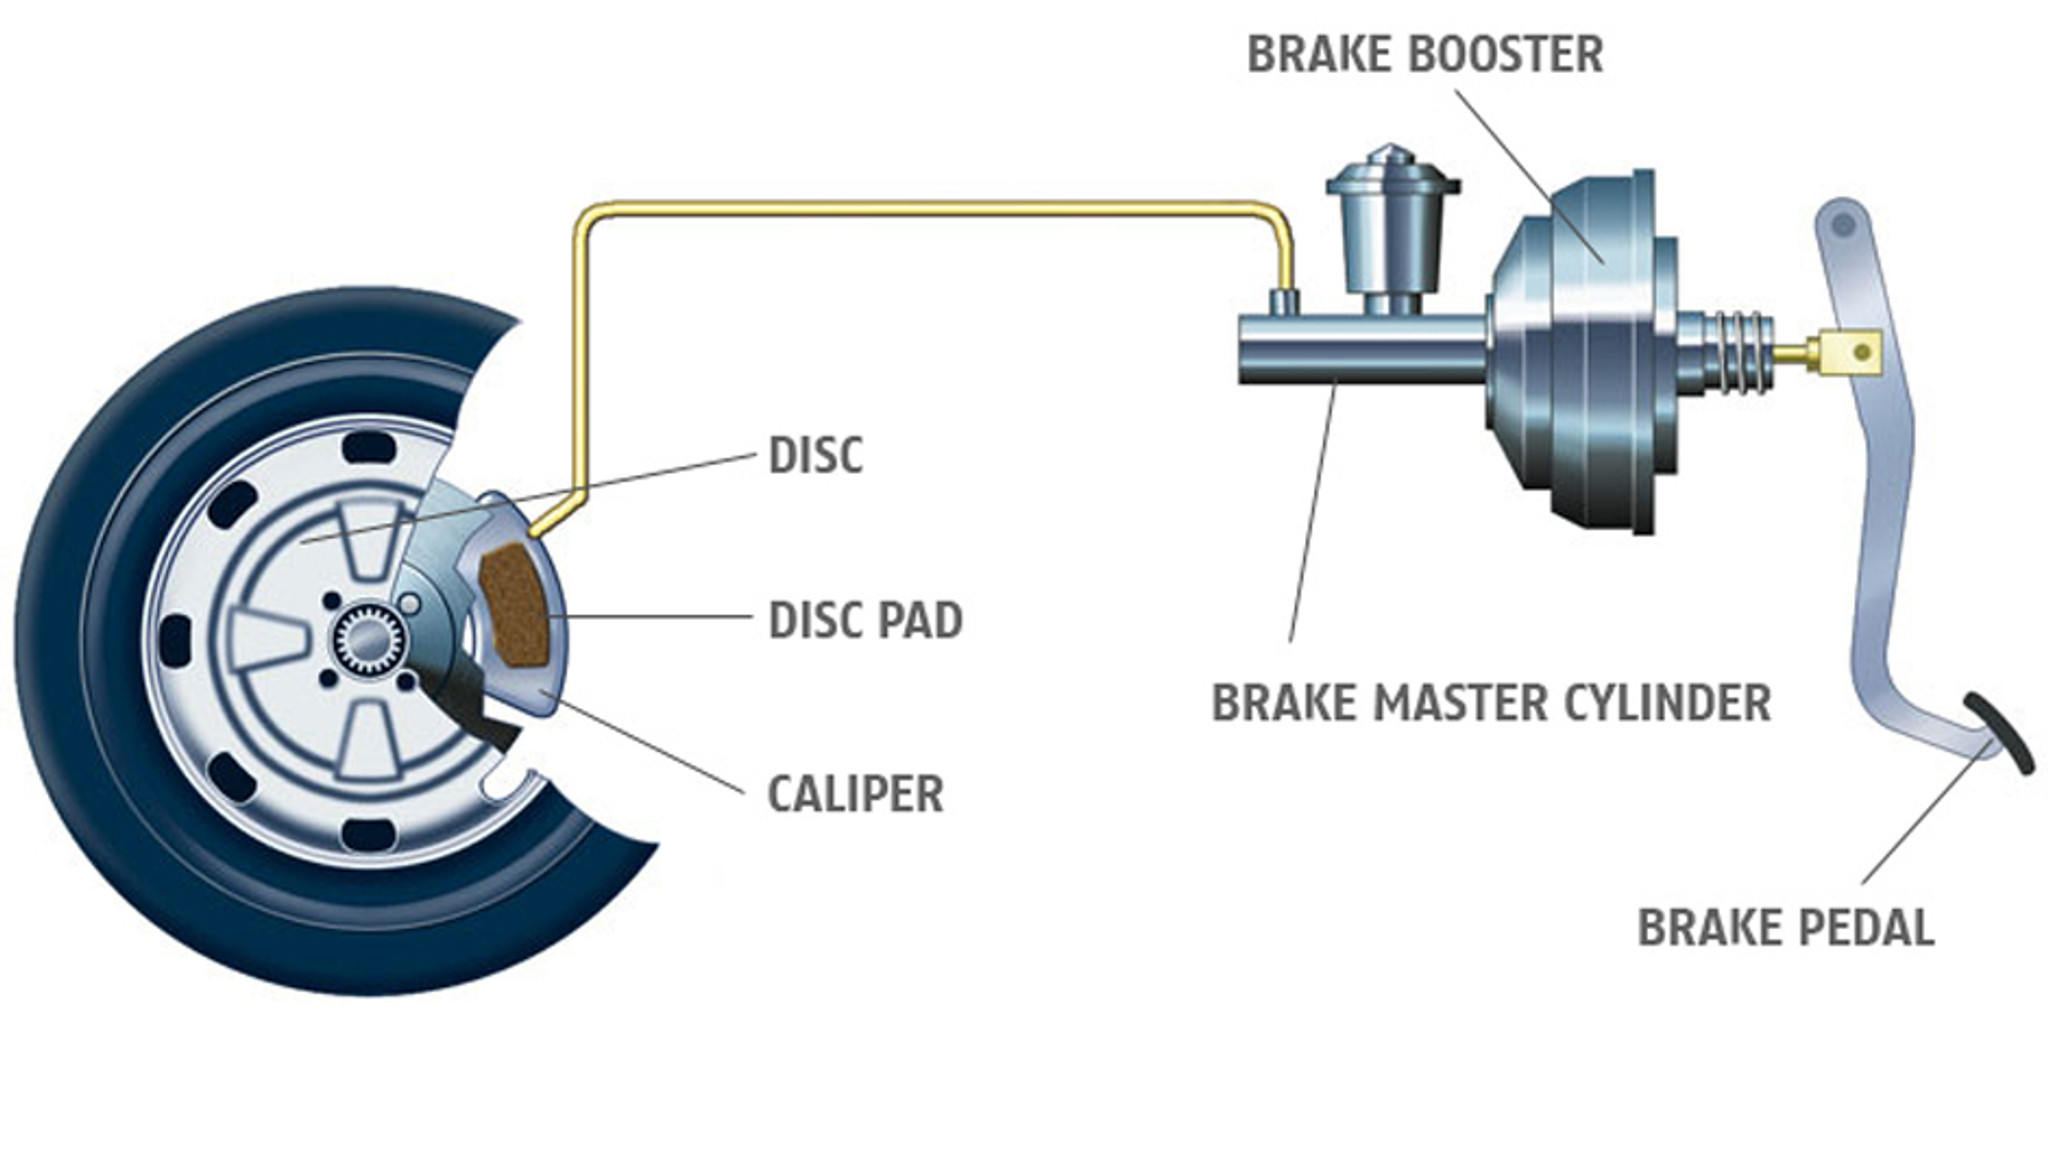 Genuine Toyota Brakes Terminology | Phil Gilbert Toyota